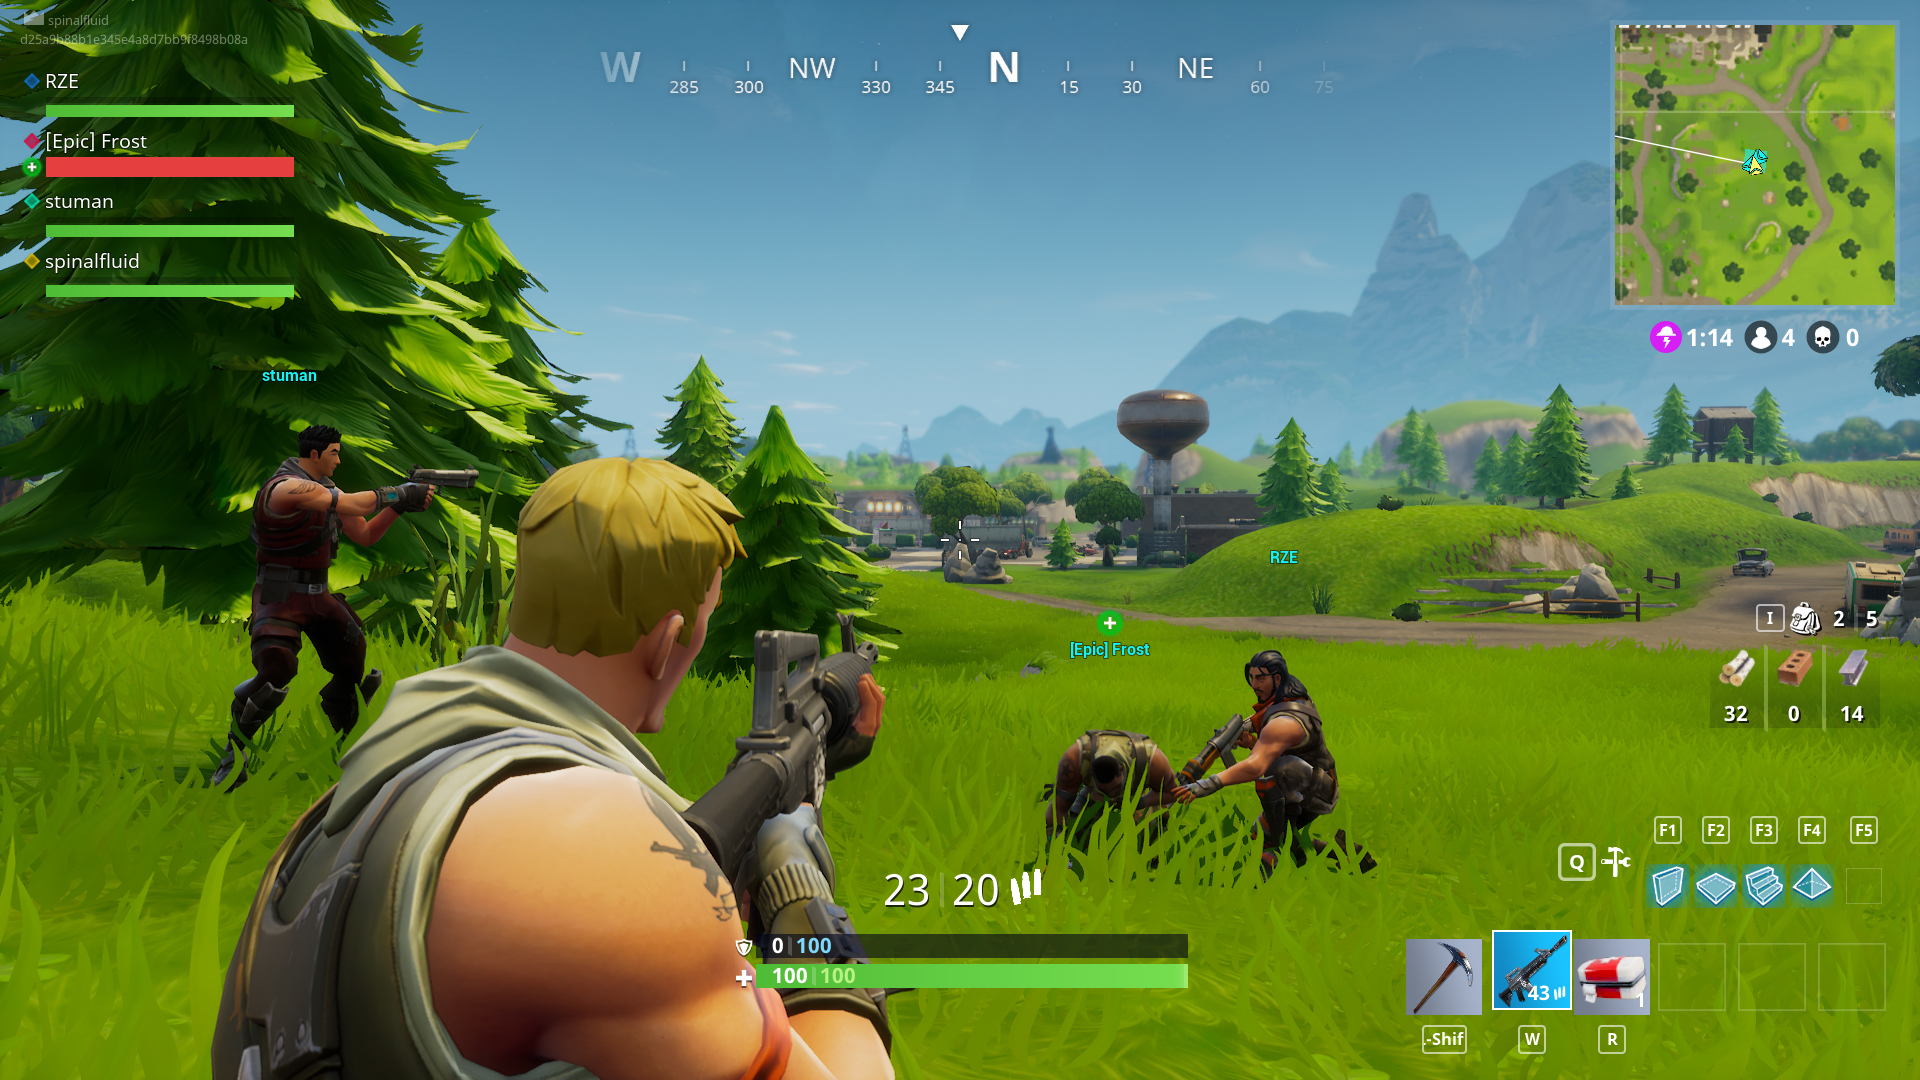 Fortnite%2Fblog%2Fea-1-6-3-release-notes%2Fsquad_04-1920x1080-a9c705e3abd5762941bb82b4c1c6f0cd0beba5aa